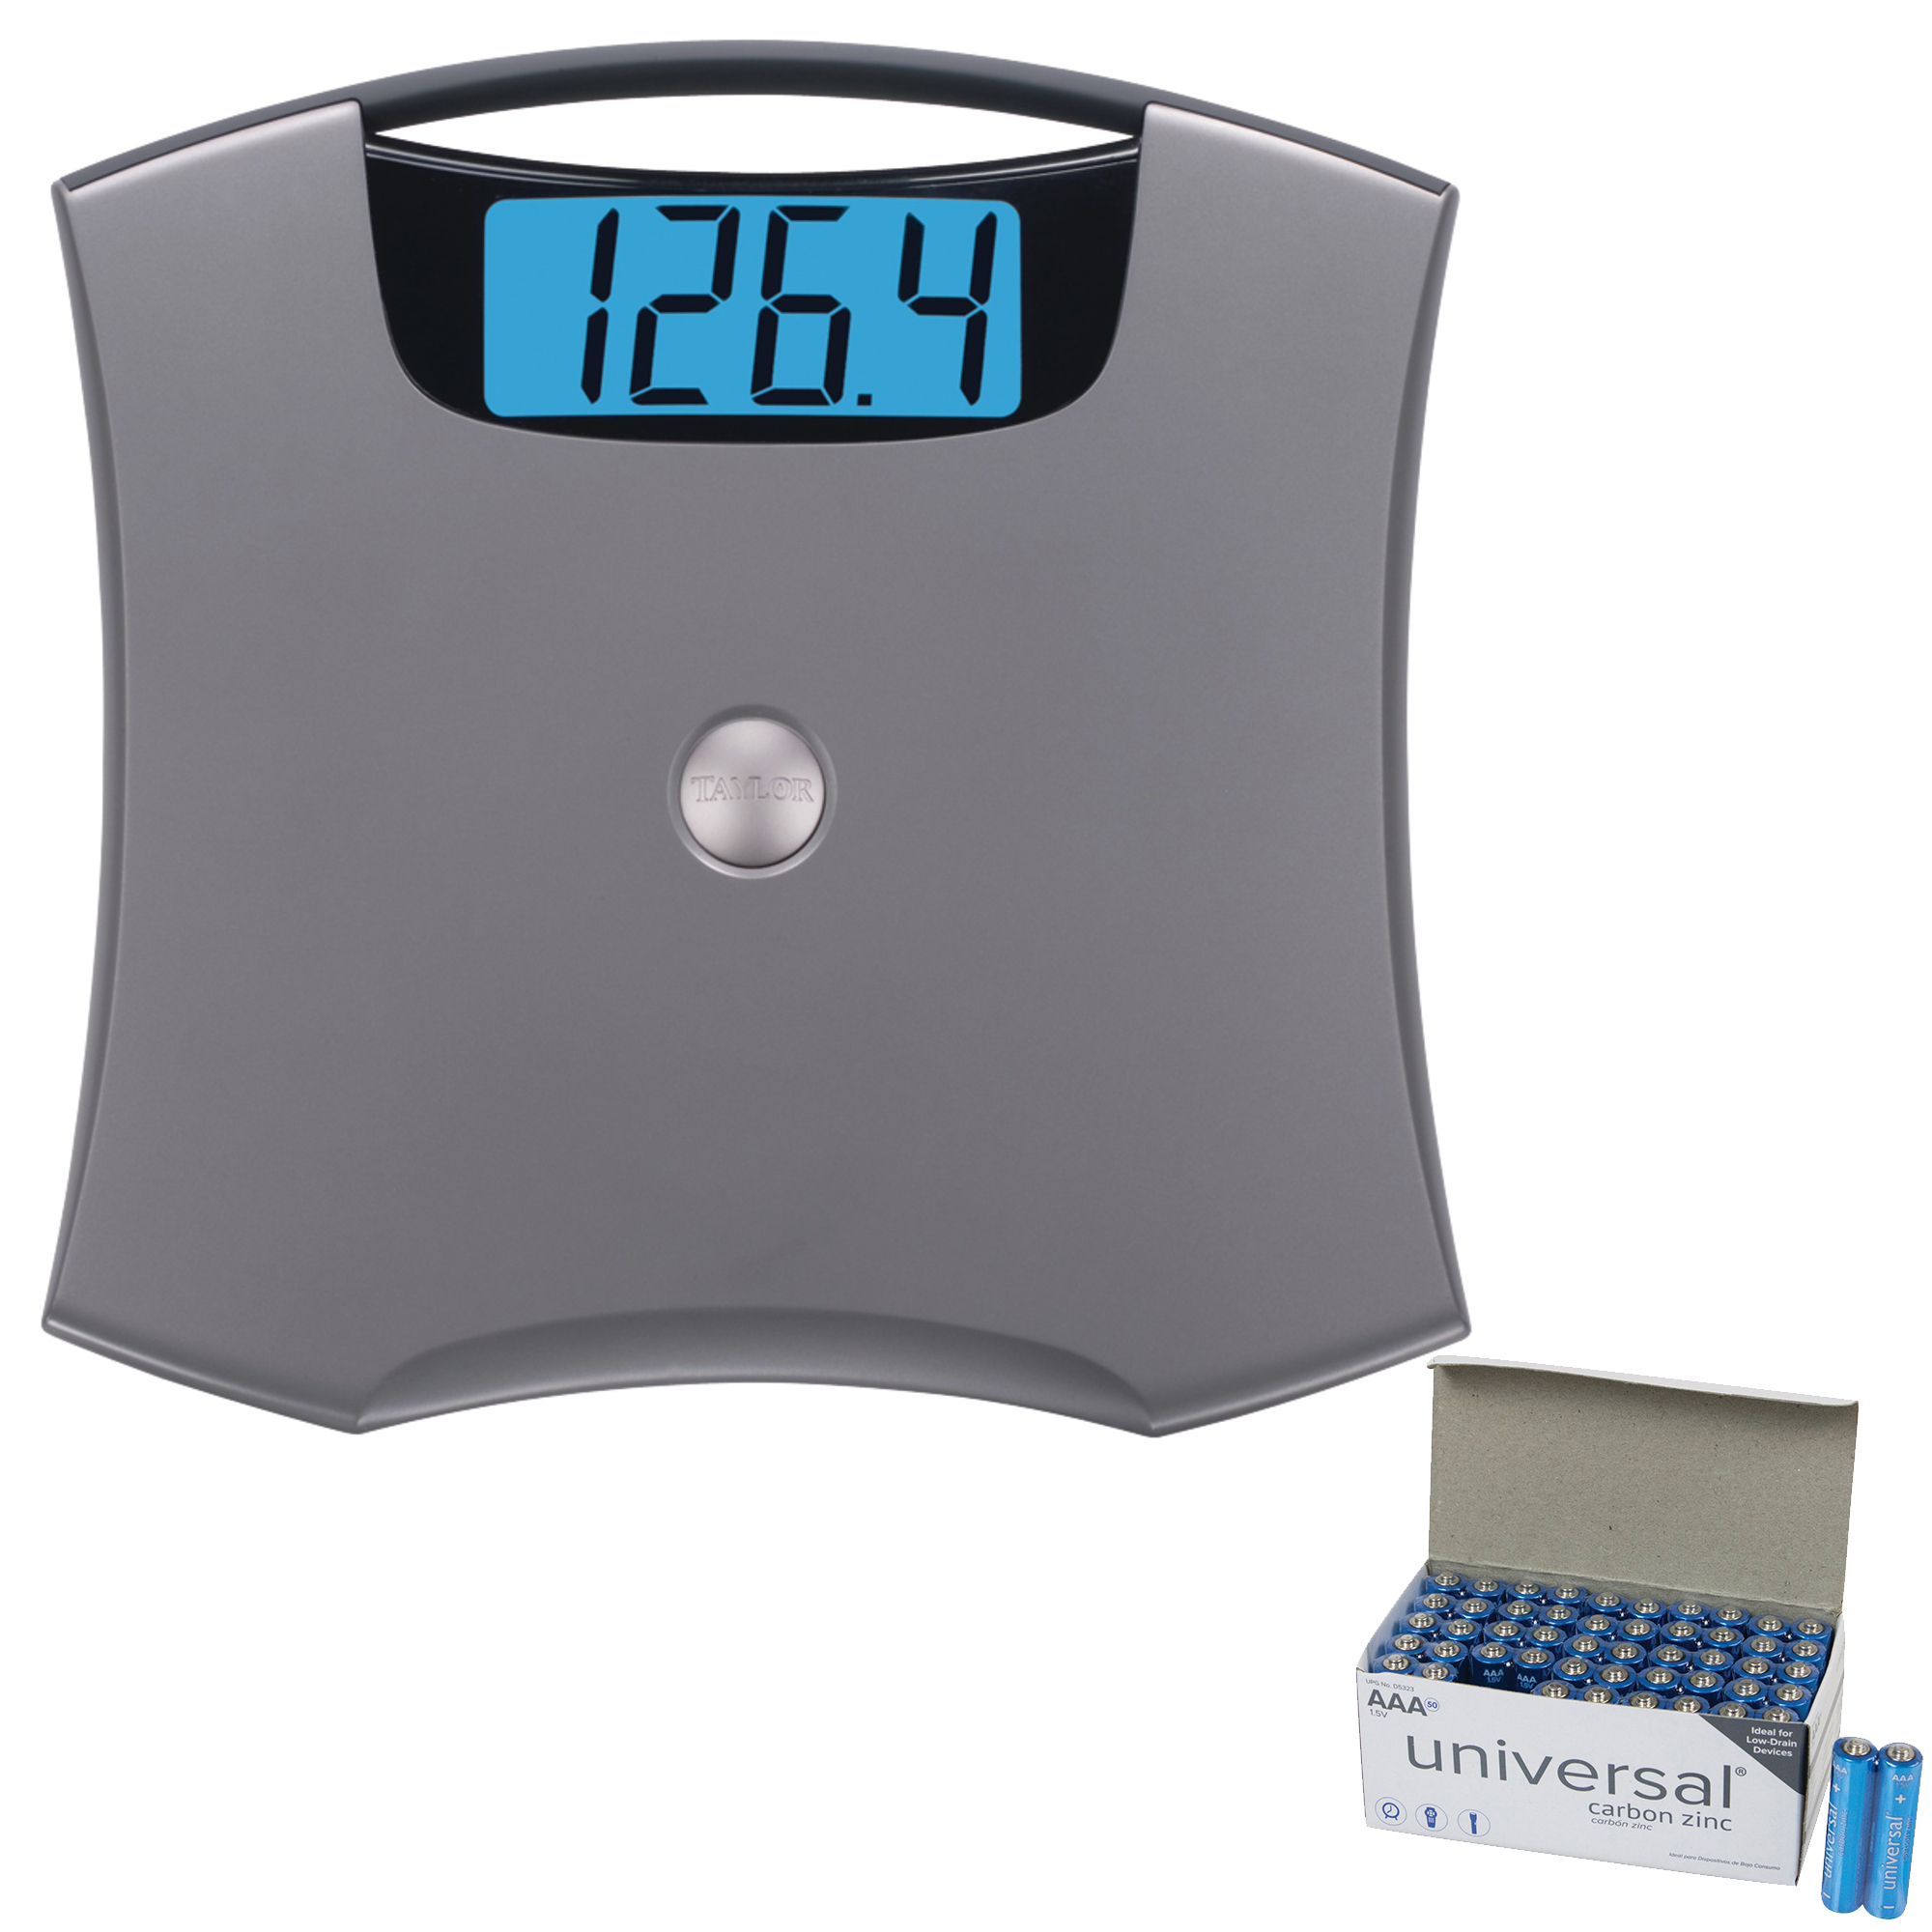 Taylor Precision Products 740541032 Digital Scale & UPG AAA 50 Pack